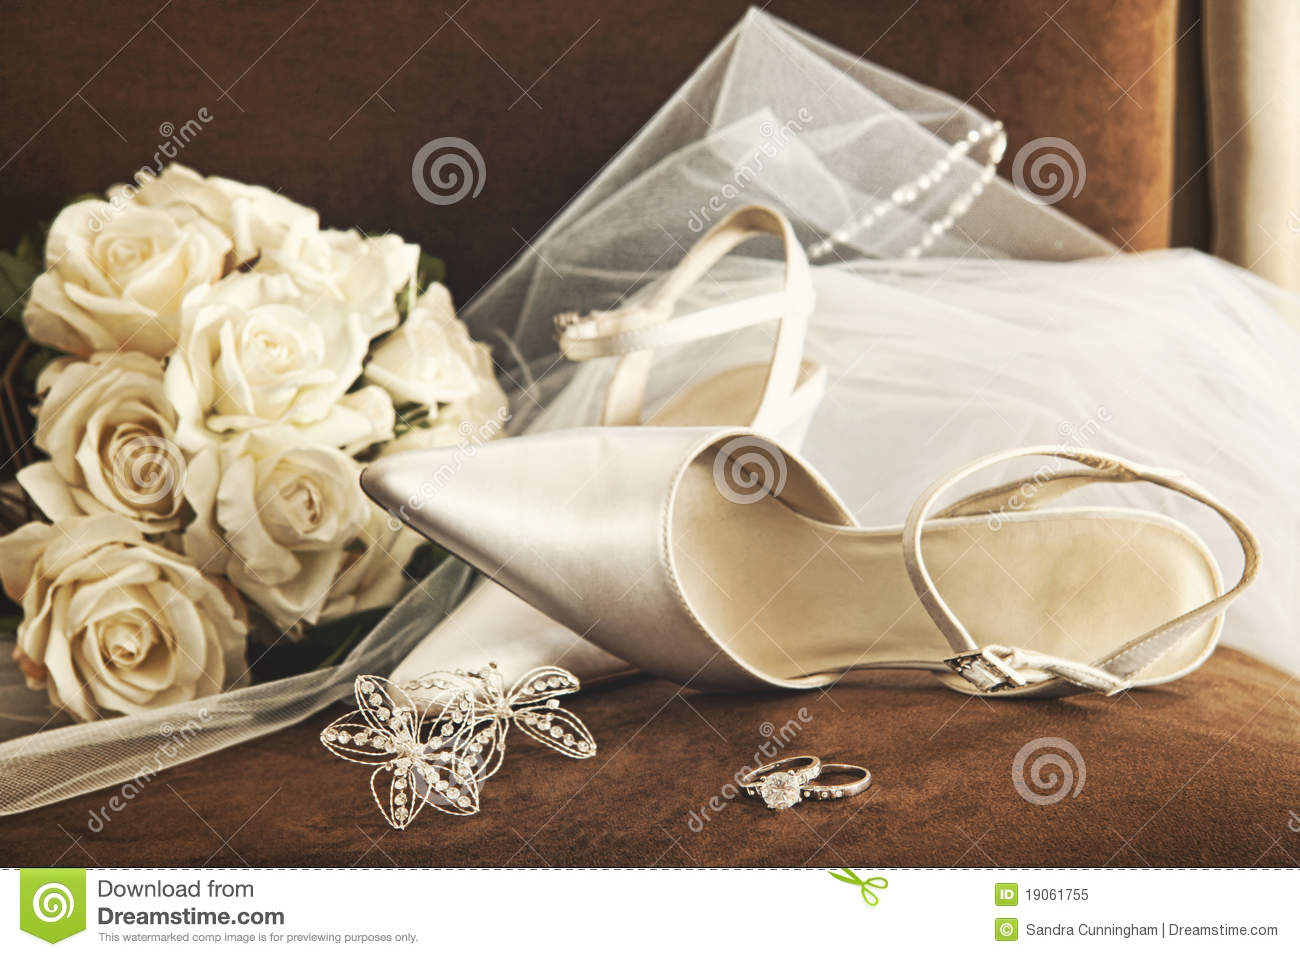 Ring Ceremony Hd Wallpaper Wedding Shoes With Bouquet Of White Roses And Ring Stock